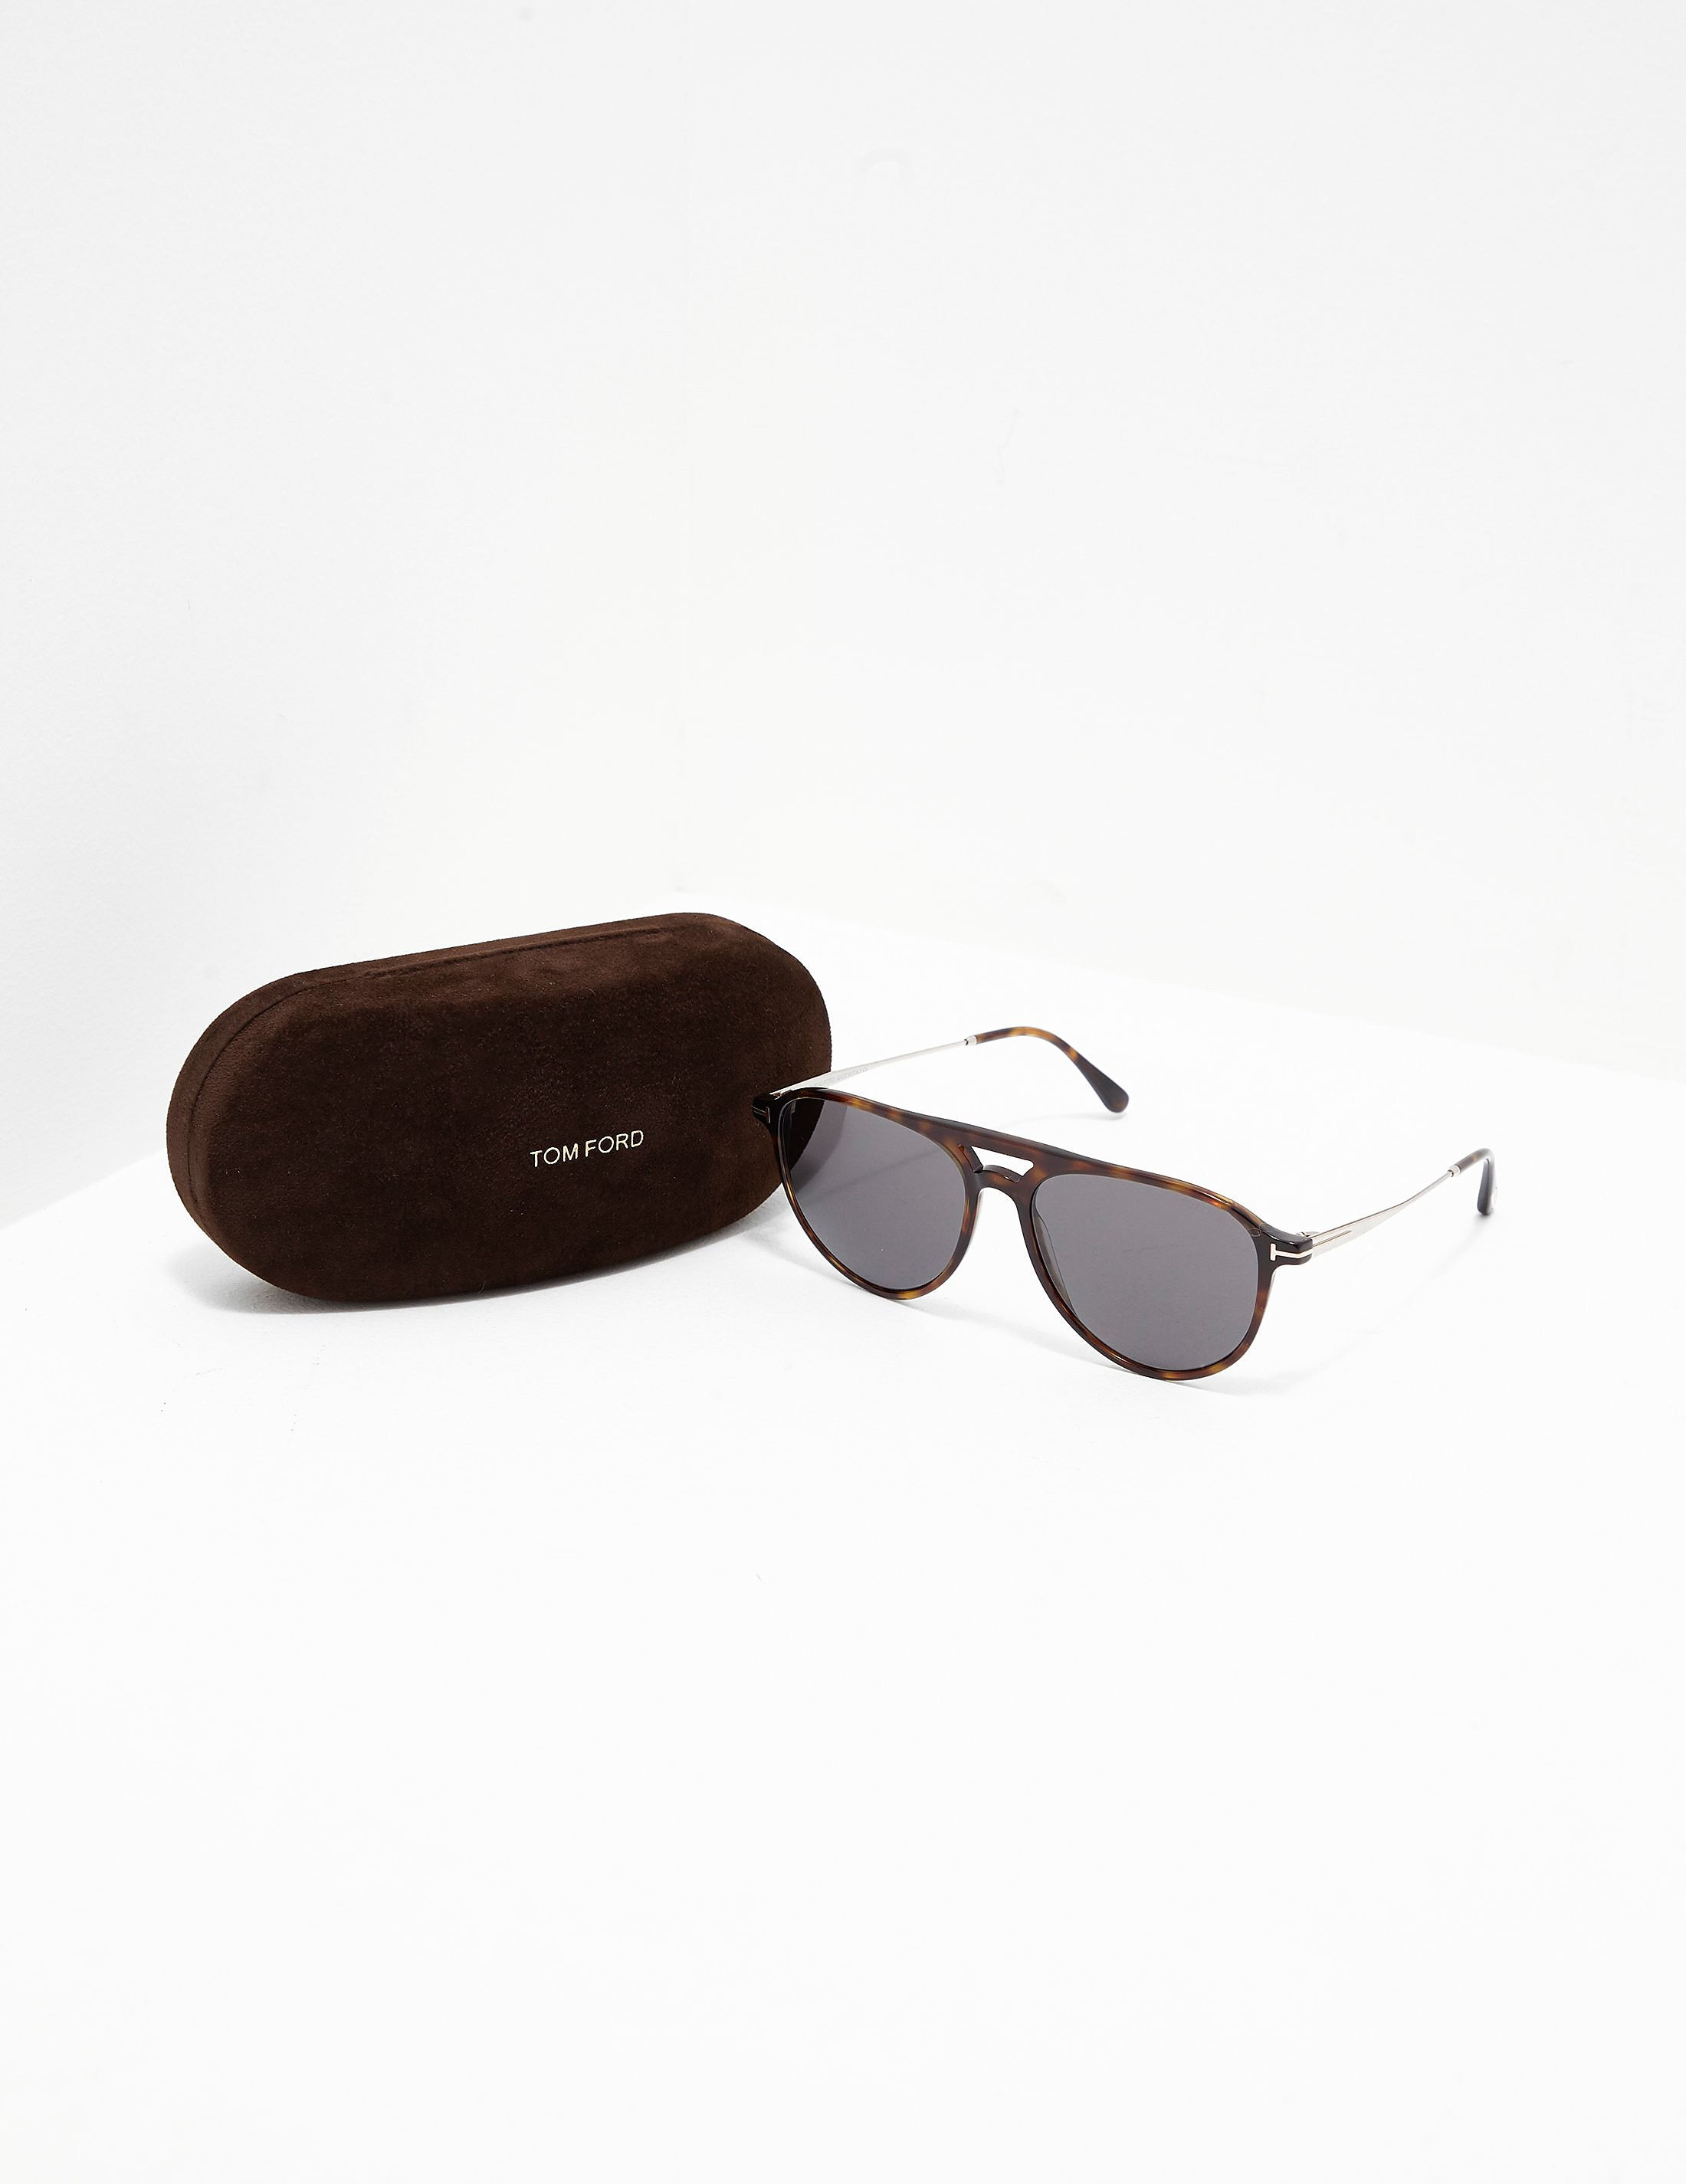 TOM FORD Carlo Sunglasses